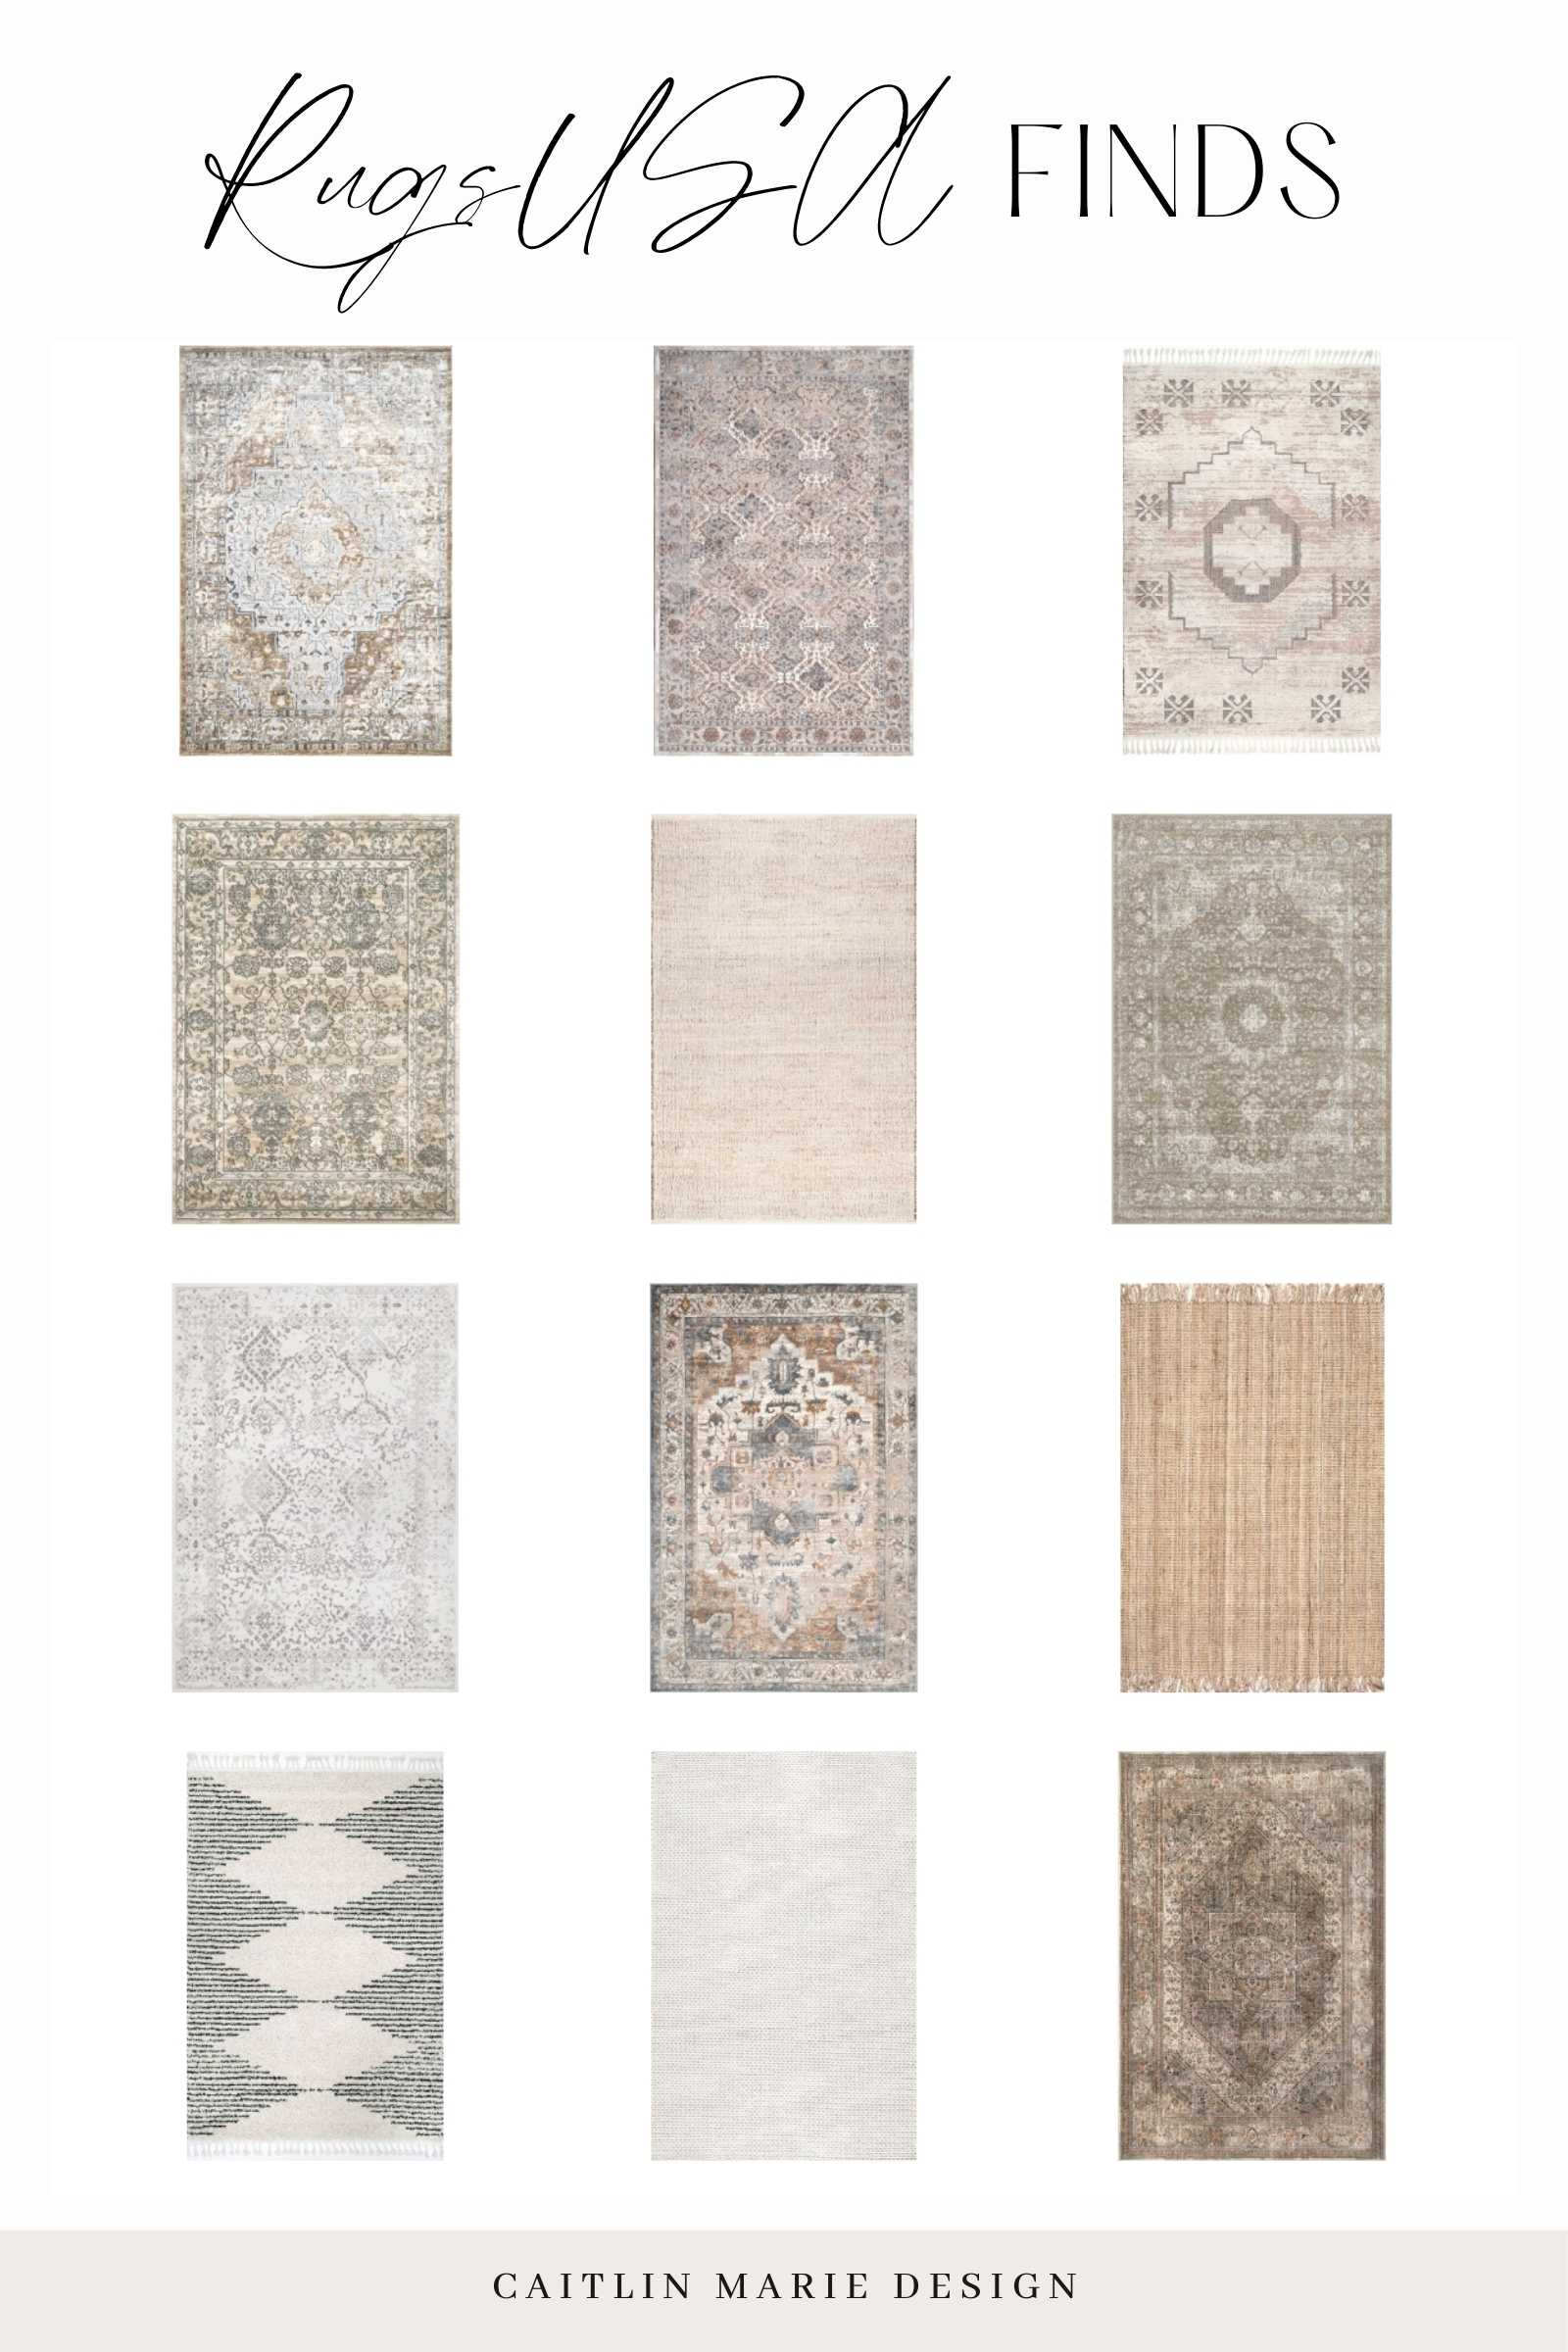 Affordable Area Rugs Roundup - Rugs USA finds